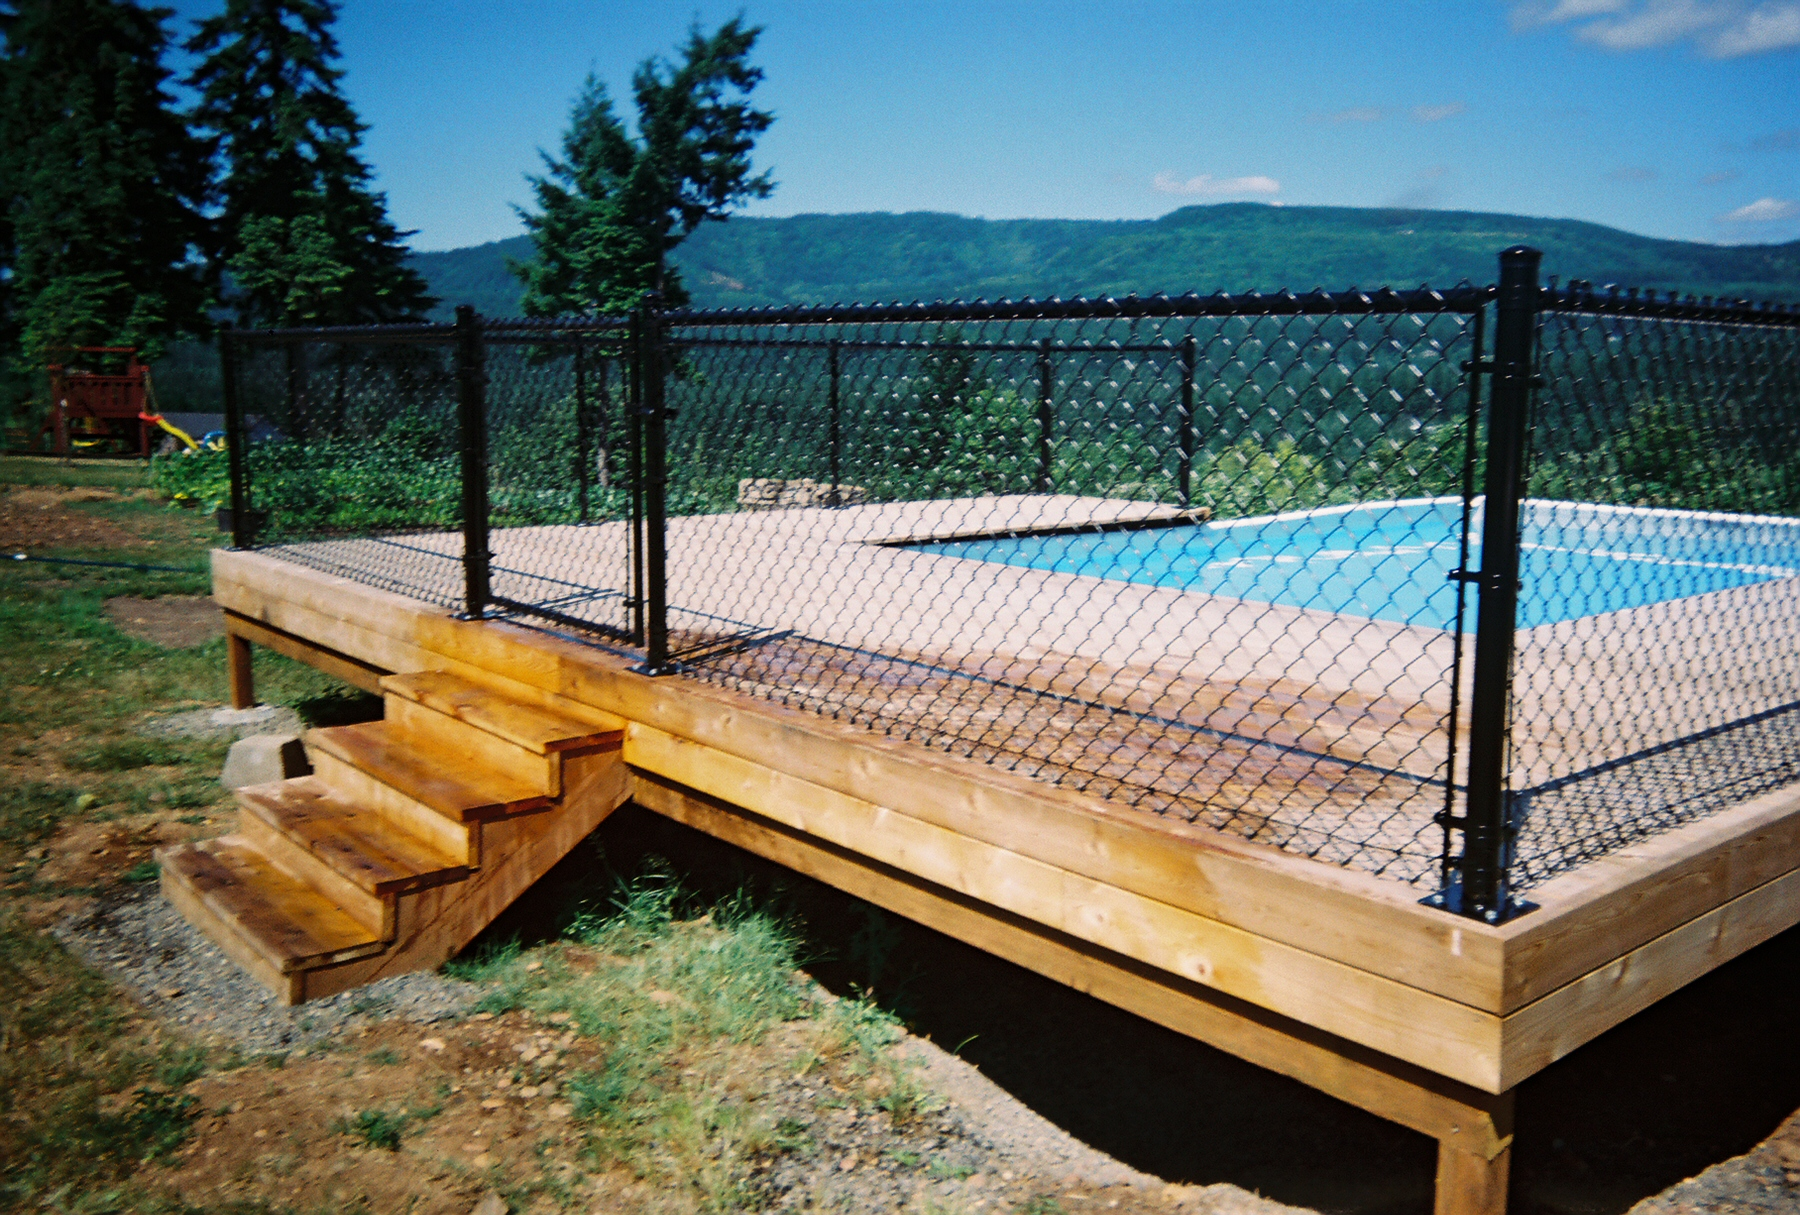 Gated Black Vinyl chain link fence with flange post. Contact Vancouver Washington's Best Fence Builders. The Fenceman Fence Company installs wood, vinyl, chain link and ornamental iron fences. We also offer materials for the do it yourselfer.